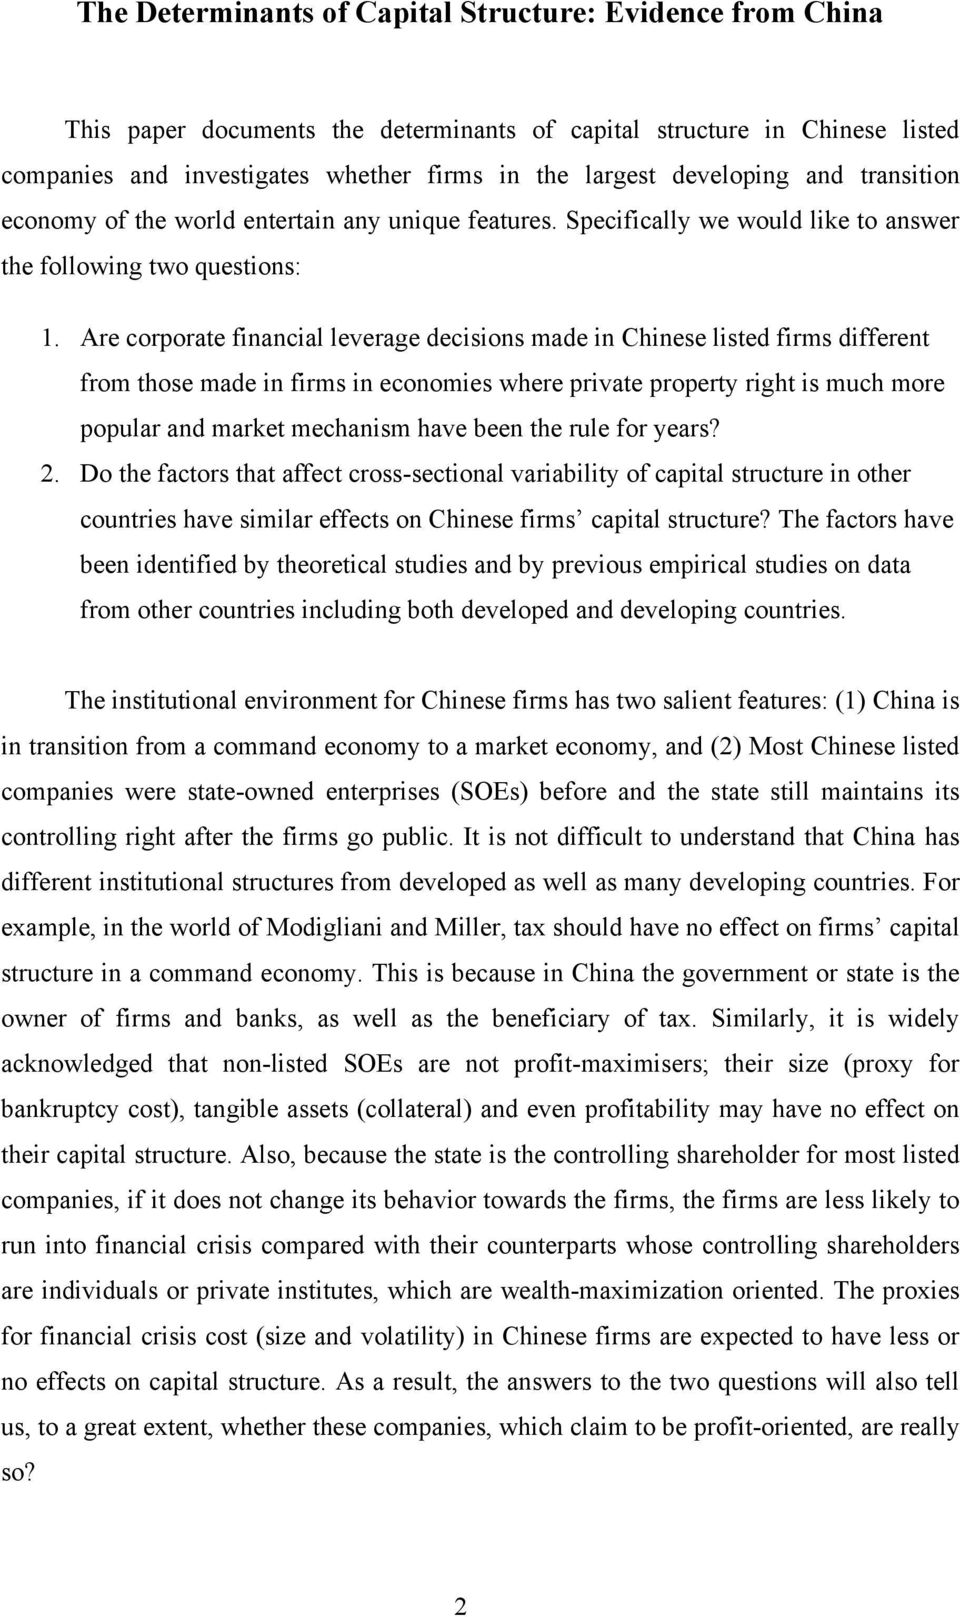 Are corporate financial leverage decisions made in Chinese listed firms different from those made in firms in economies where private property right is much more popular and market mechanism have